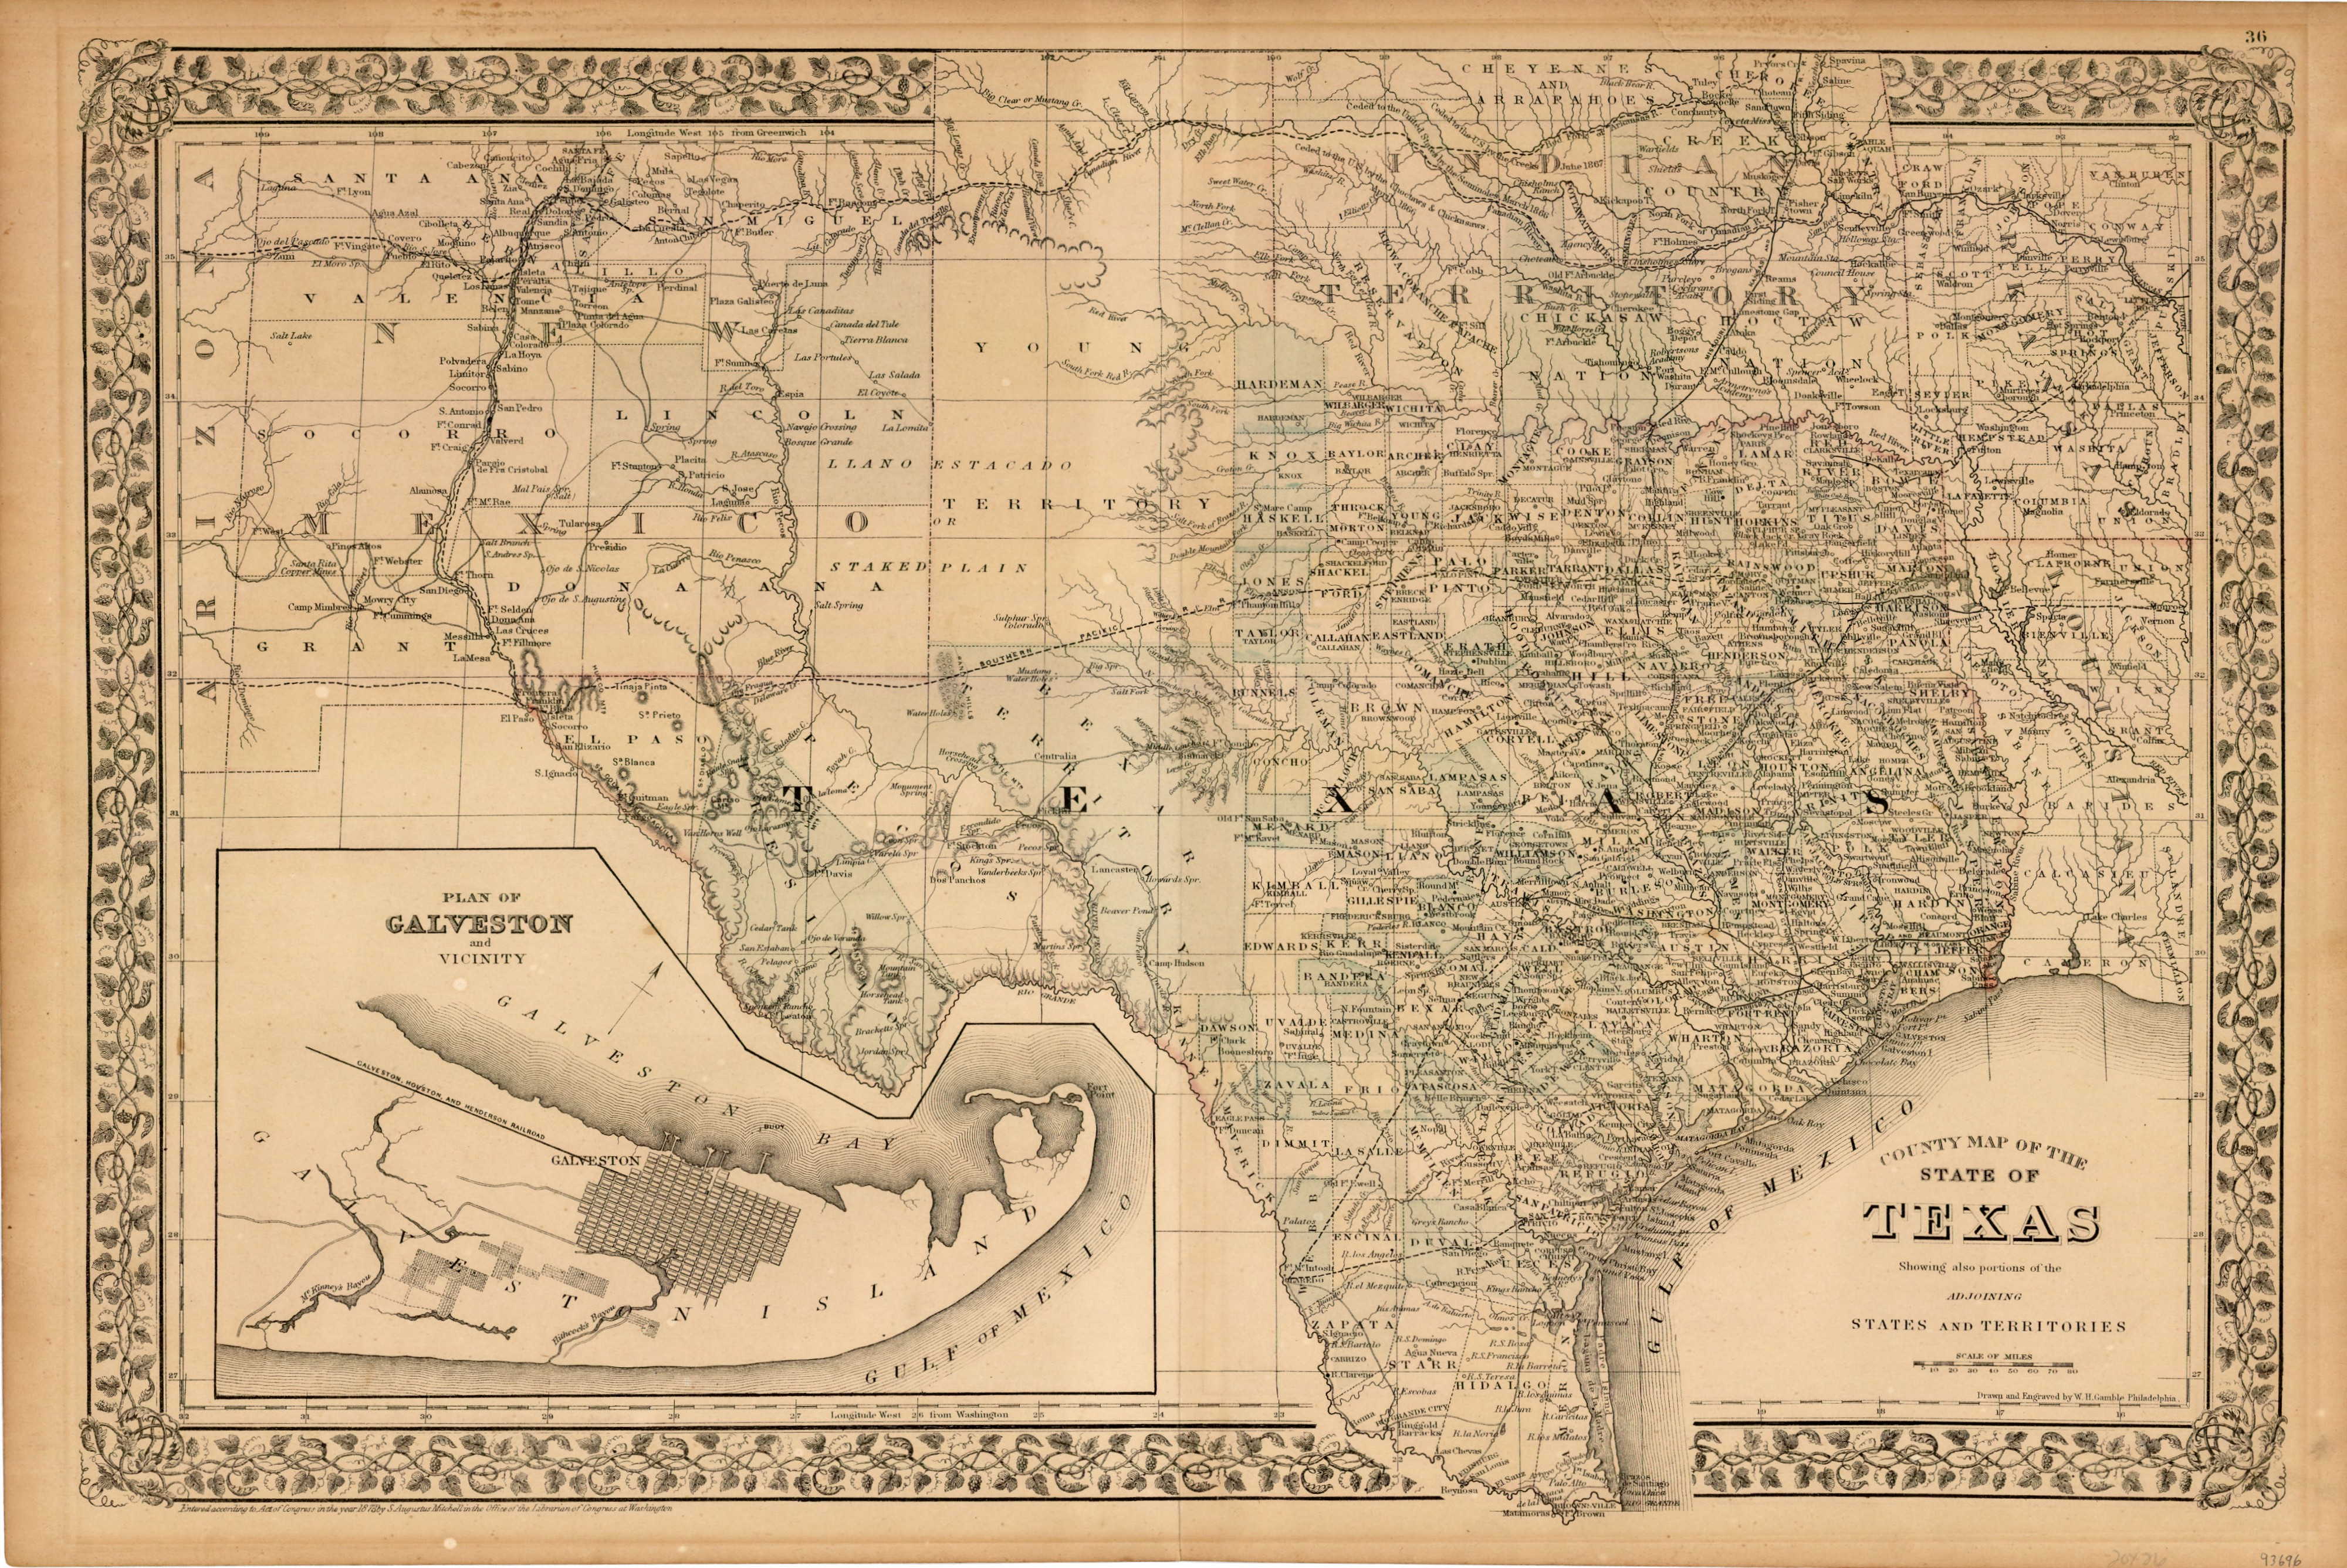 State Of Texas County Map.County Map Of The State Of Texas 1873 By W H Gamble